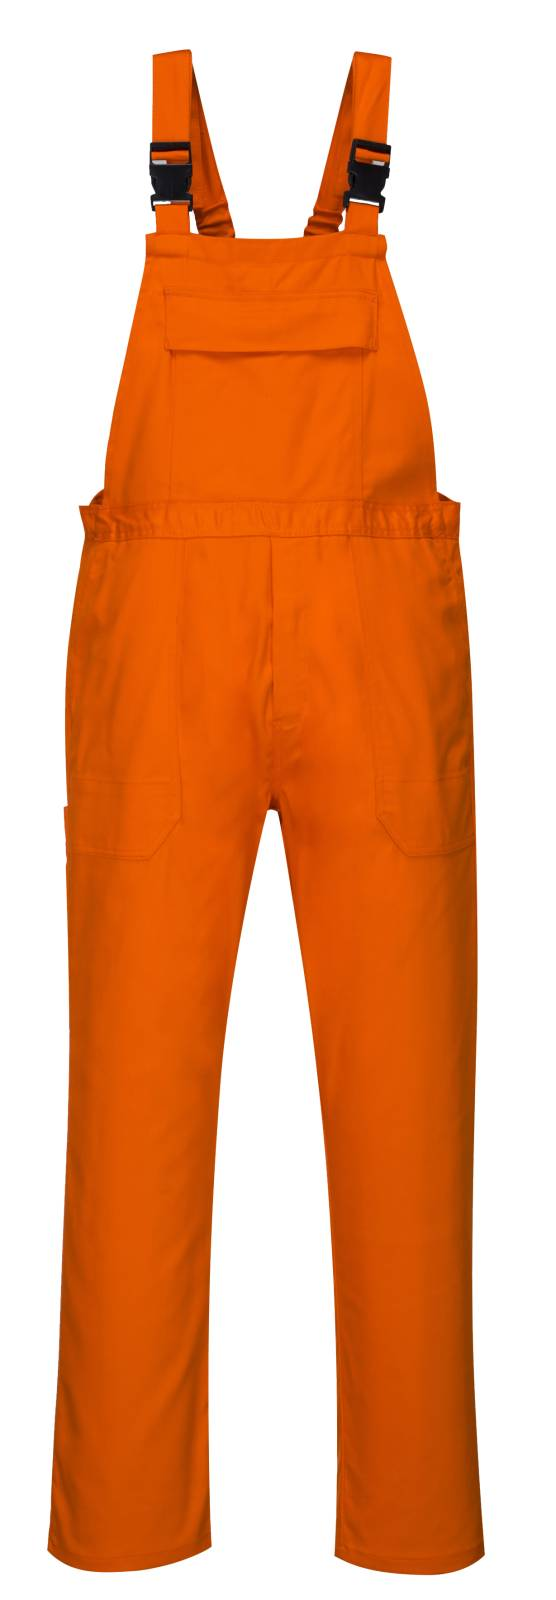 Portwest Am. Overalls BIZ4 oranje(OR)